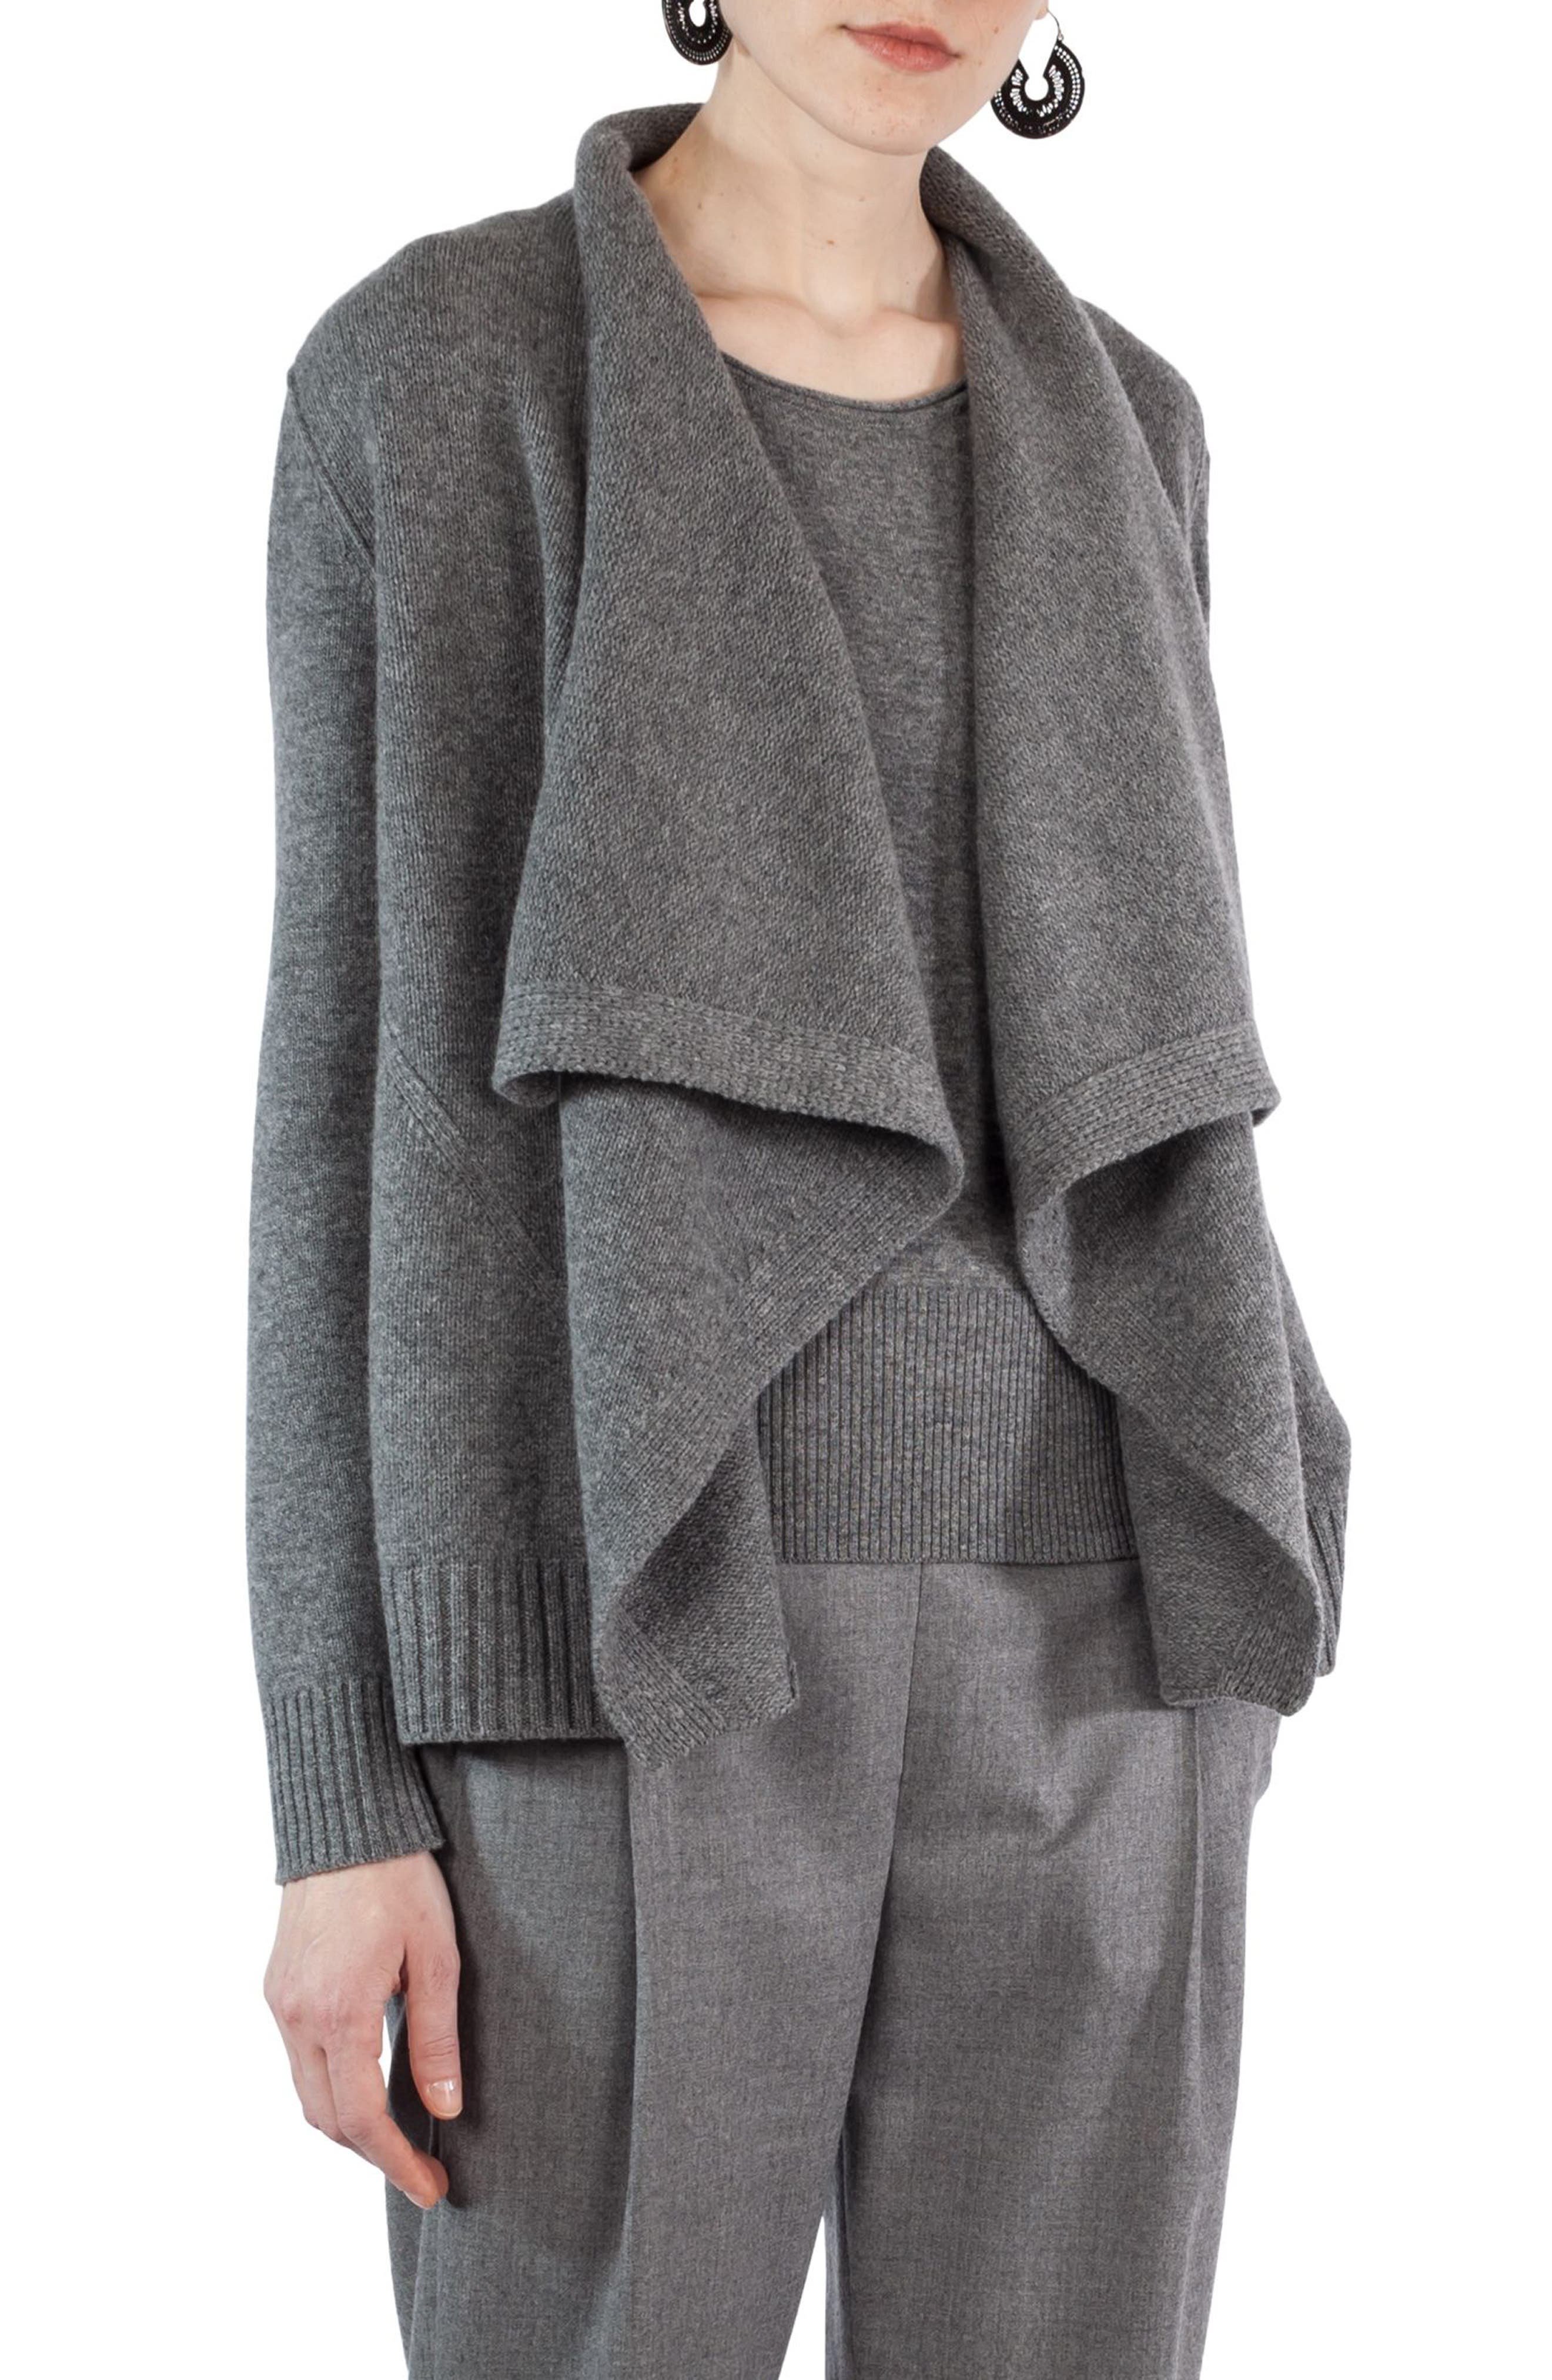 Wool & Cashmere Cardigan,                             Main thumbnail 1, color,                             Stone